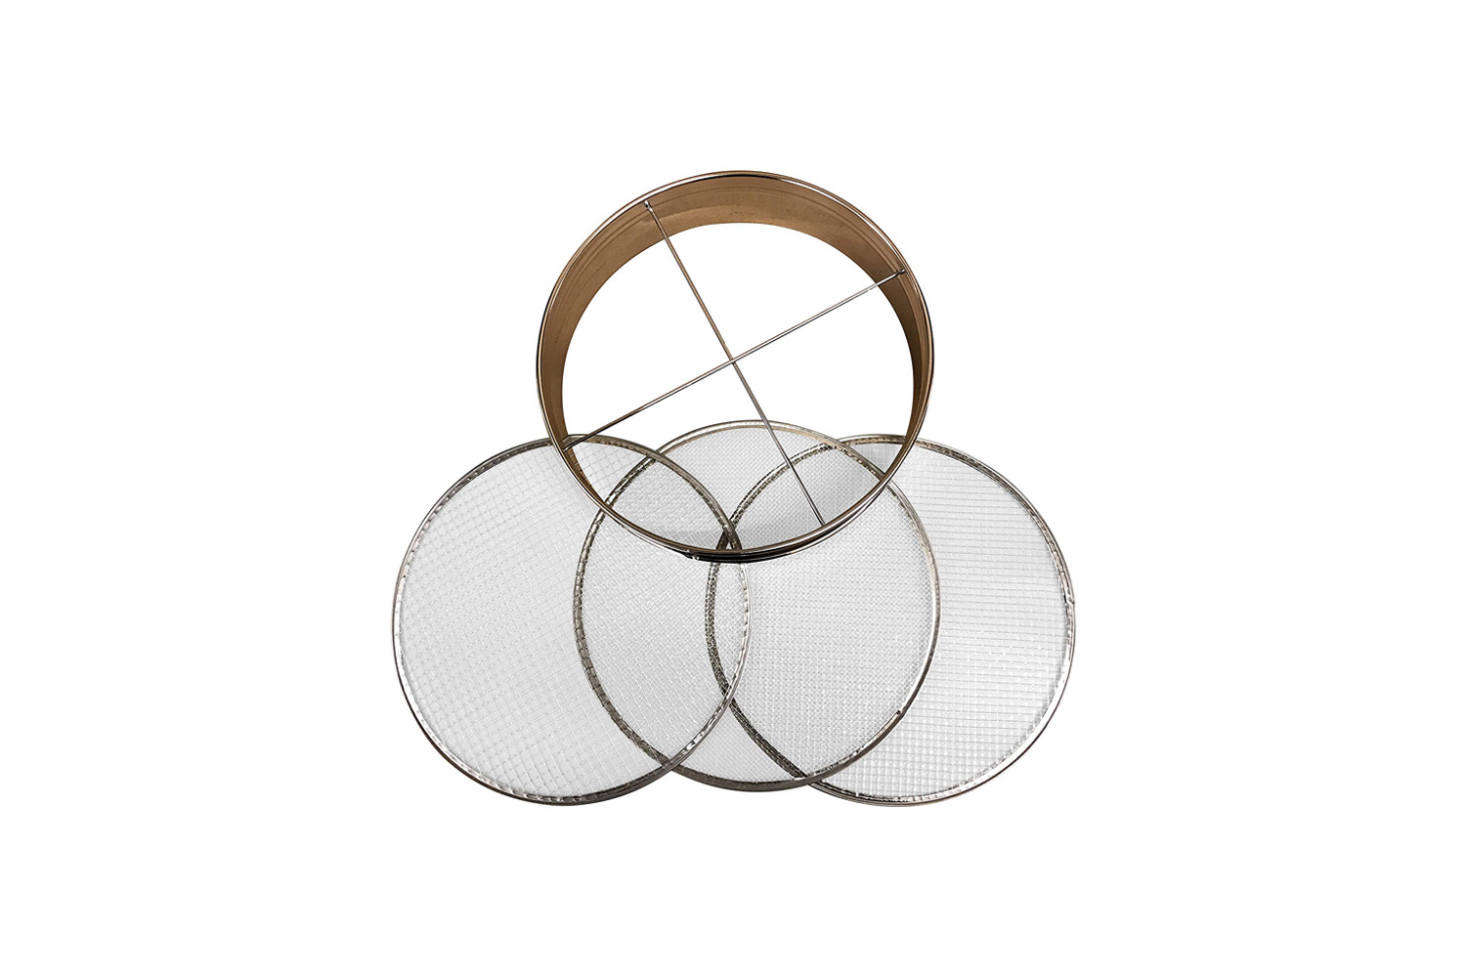 The 4-Piece Soil Sieve Set made with a stainless steel frame is $34.95 on Amazon Prime. Read more about the tool in our postGarden Riddle: What's Round, and Sifts Twigs?